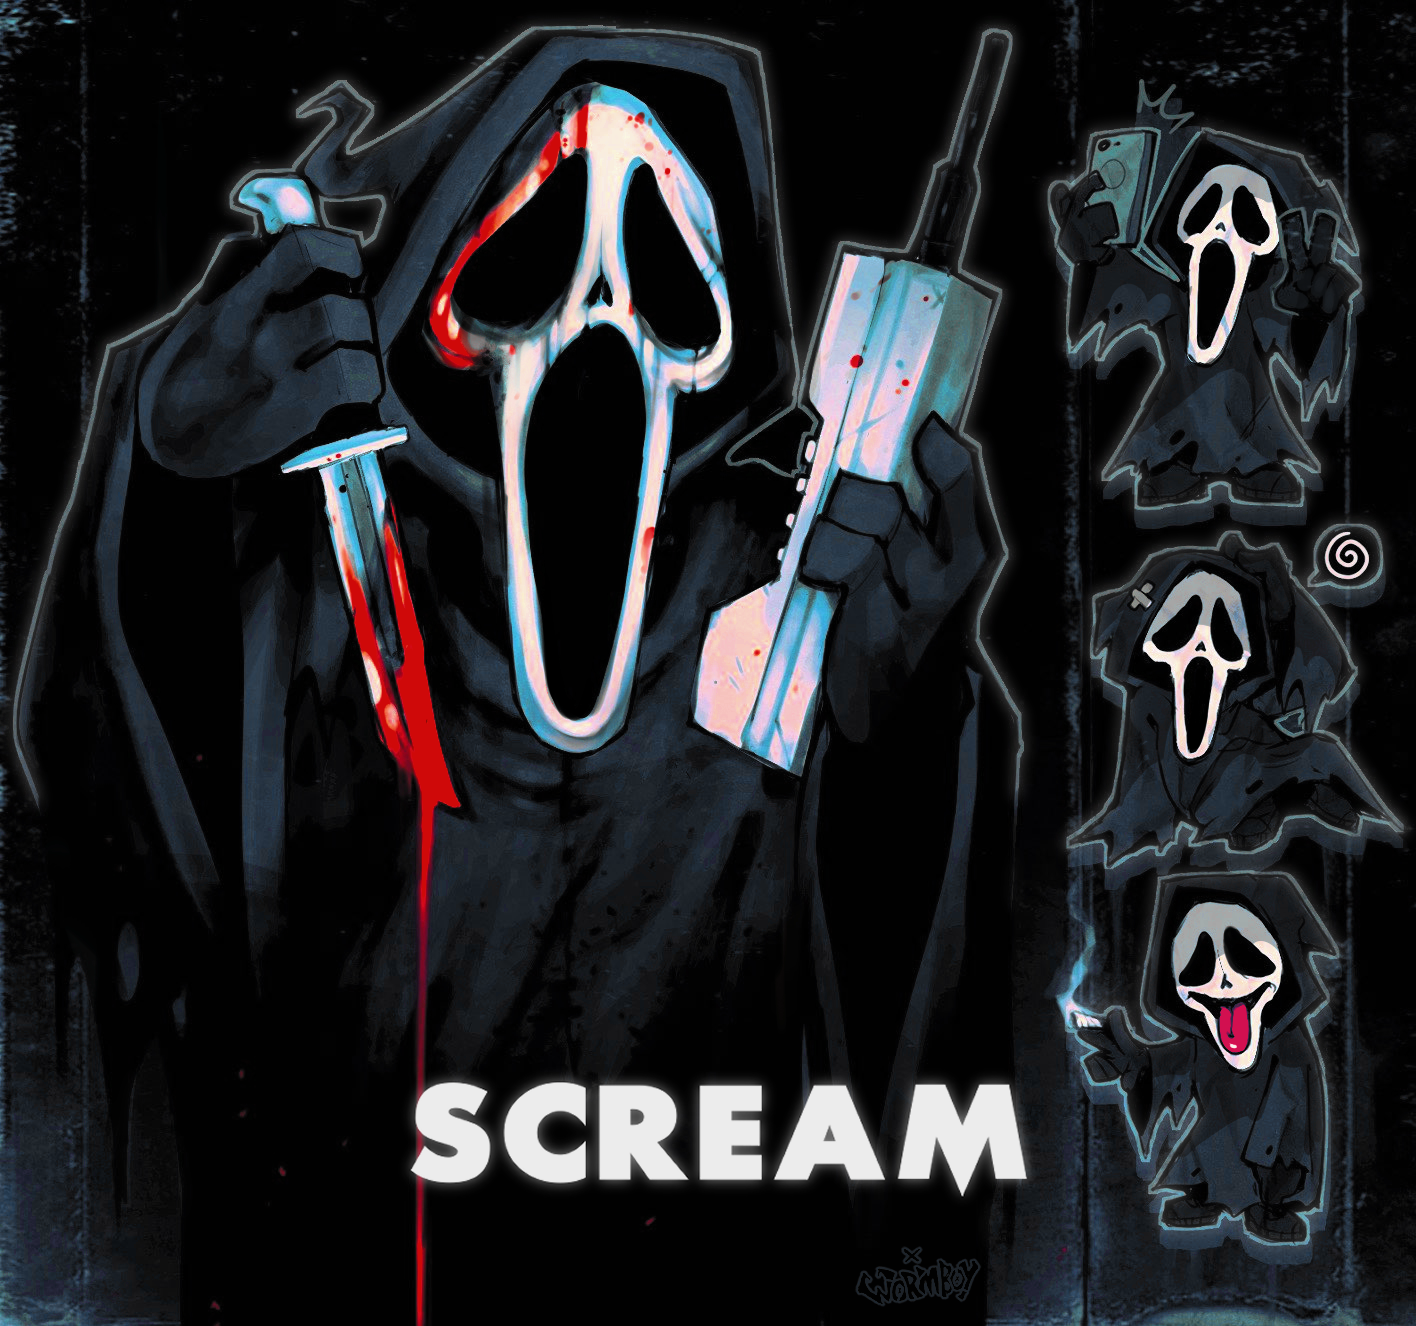 SCREAM - GHOSTFACE KILLER